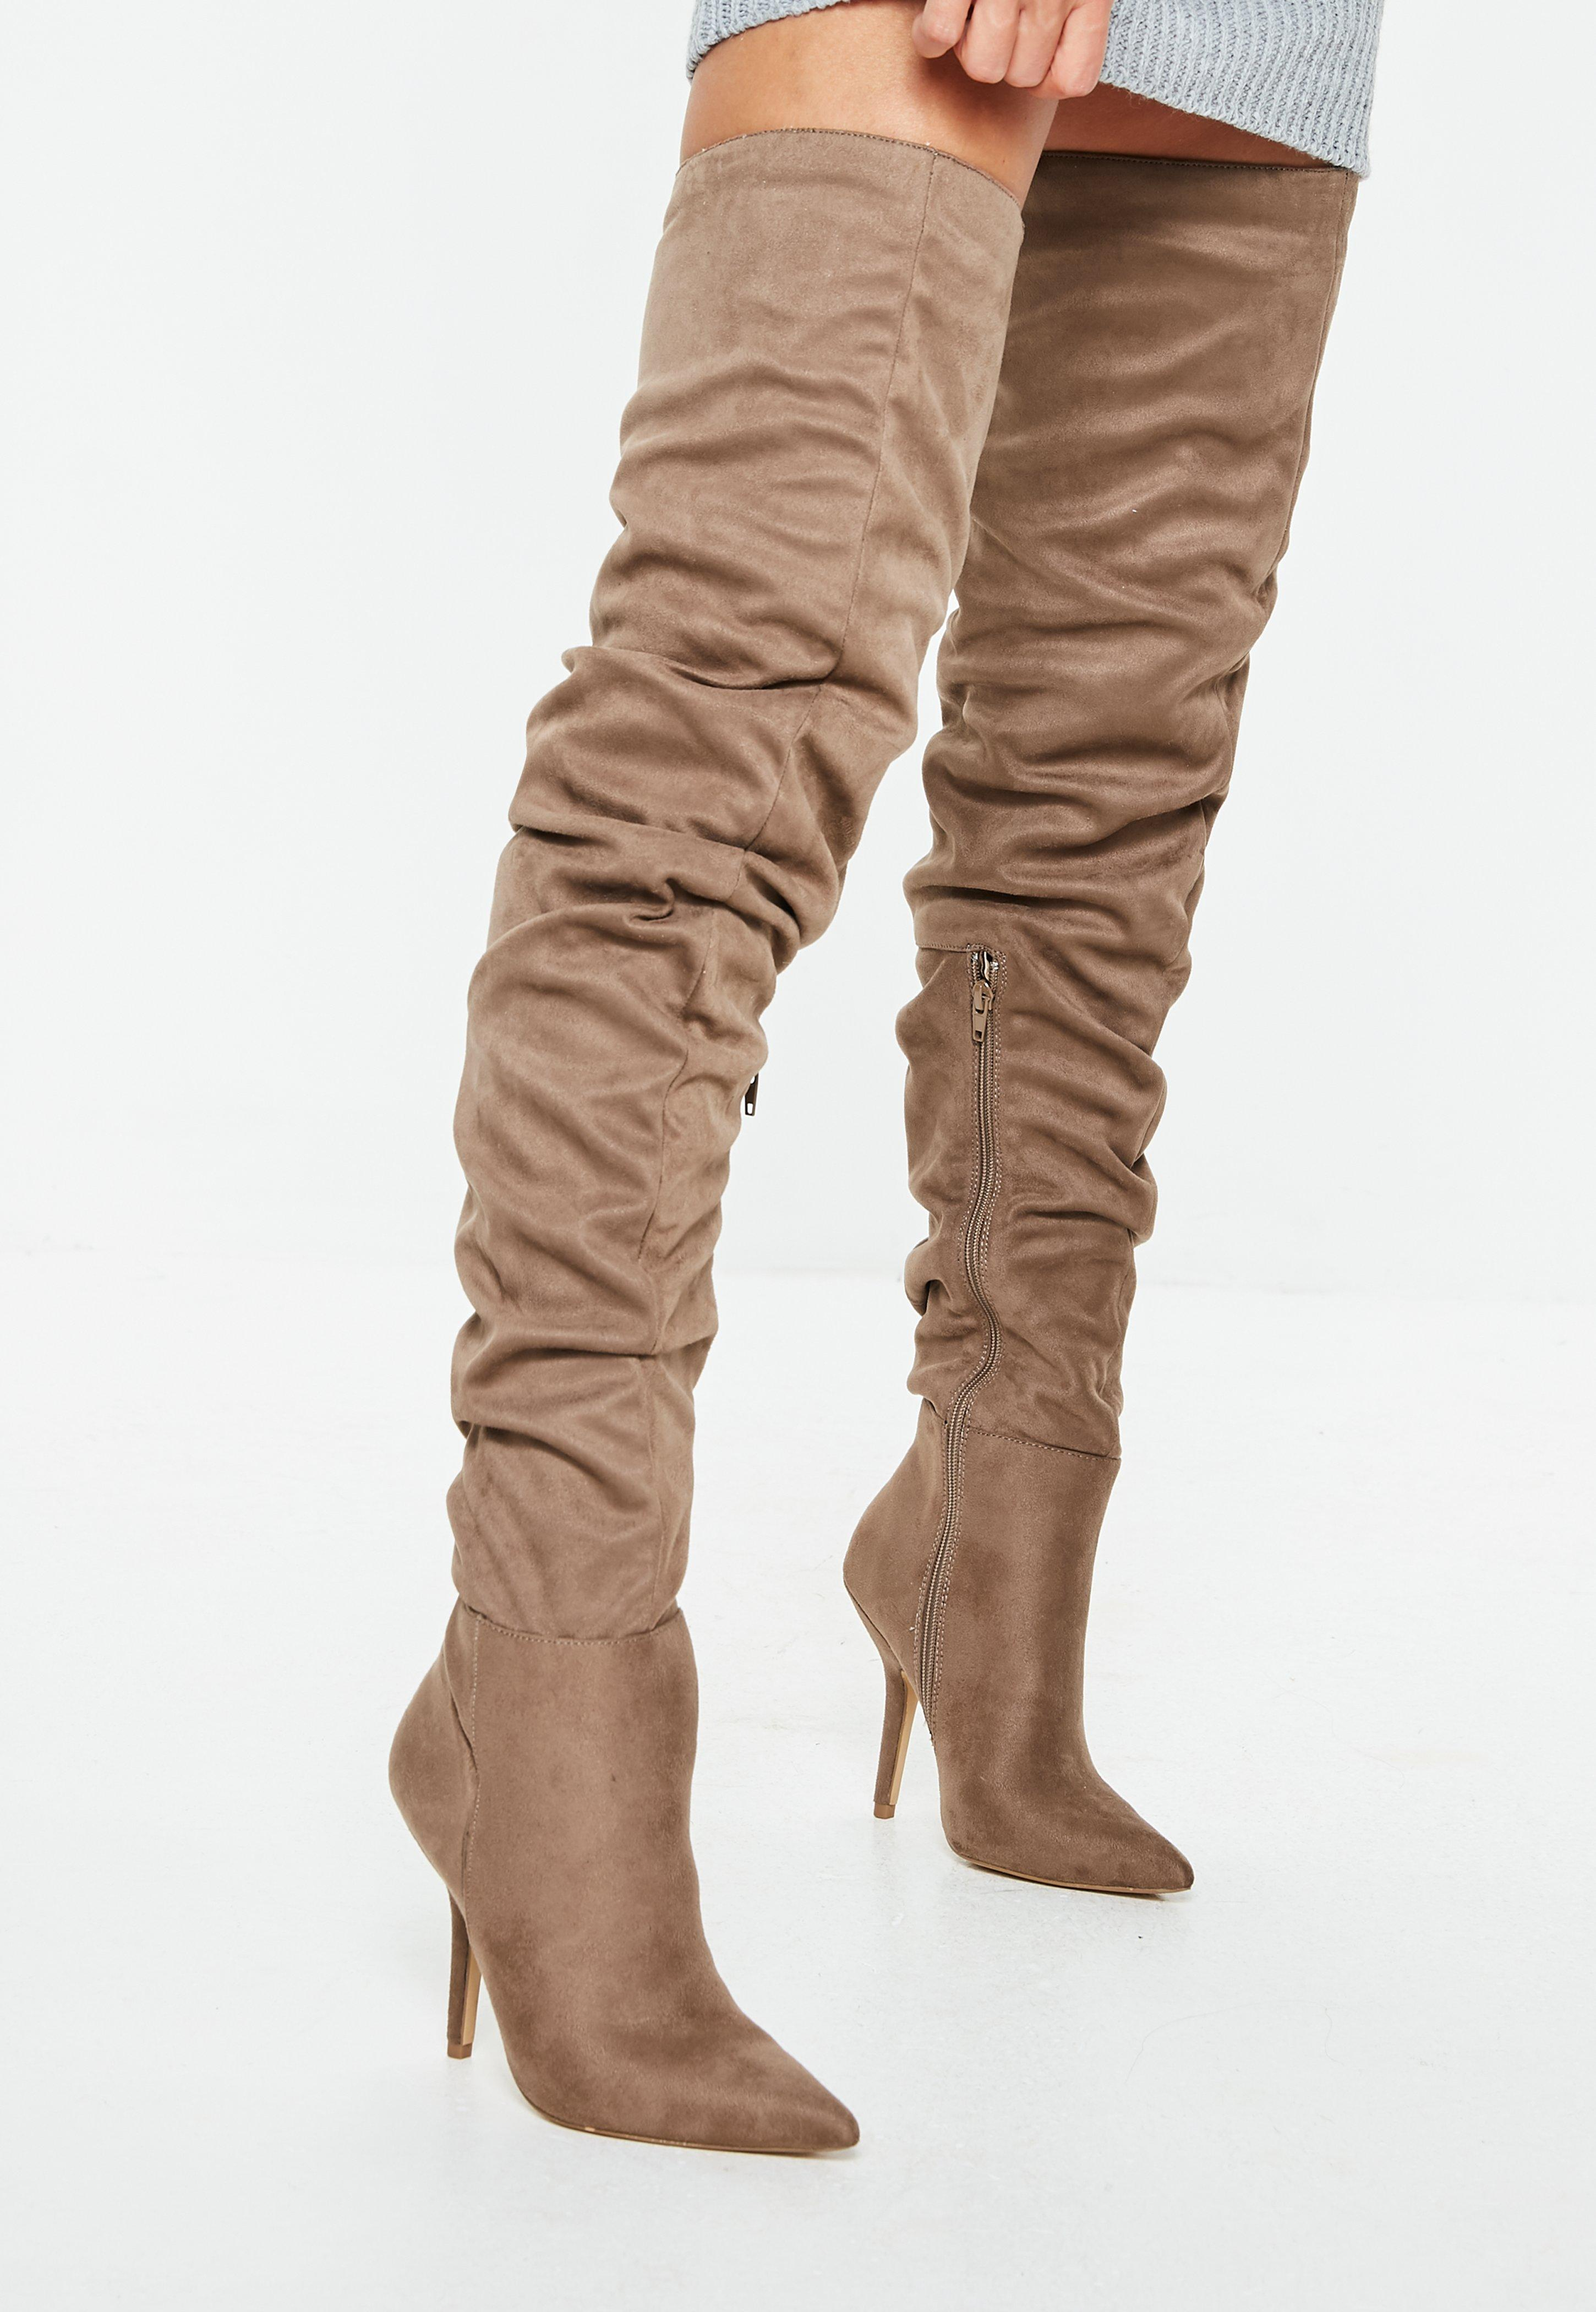 df0d0ba1a0c4 Shop Boots for Women Online - Missguided Australia